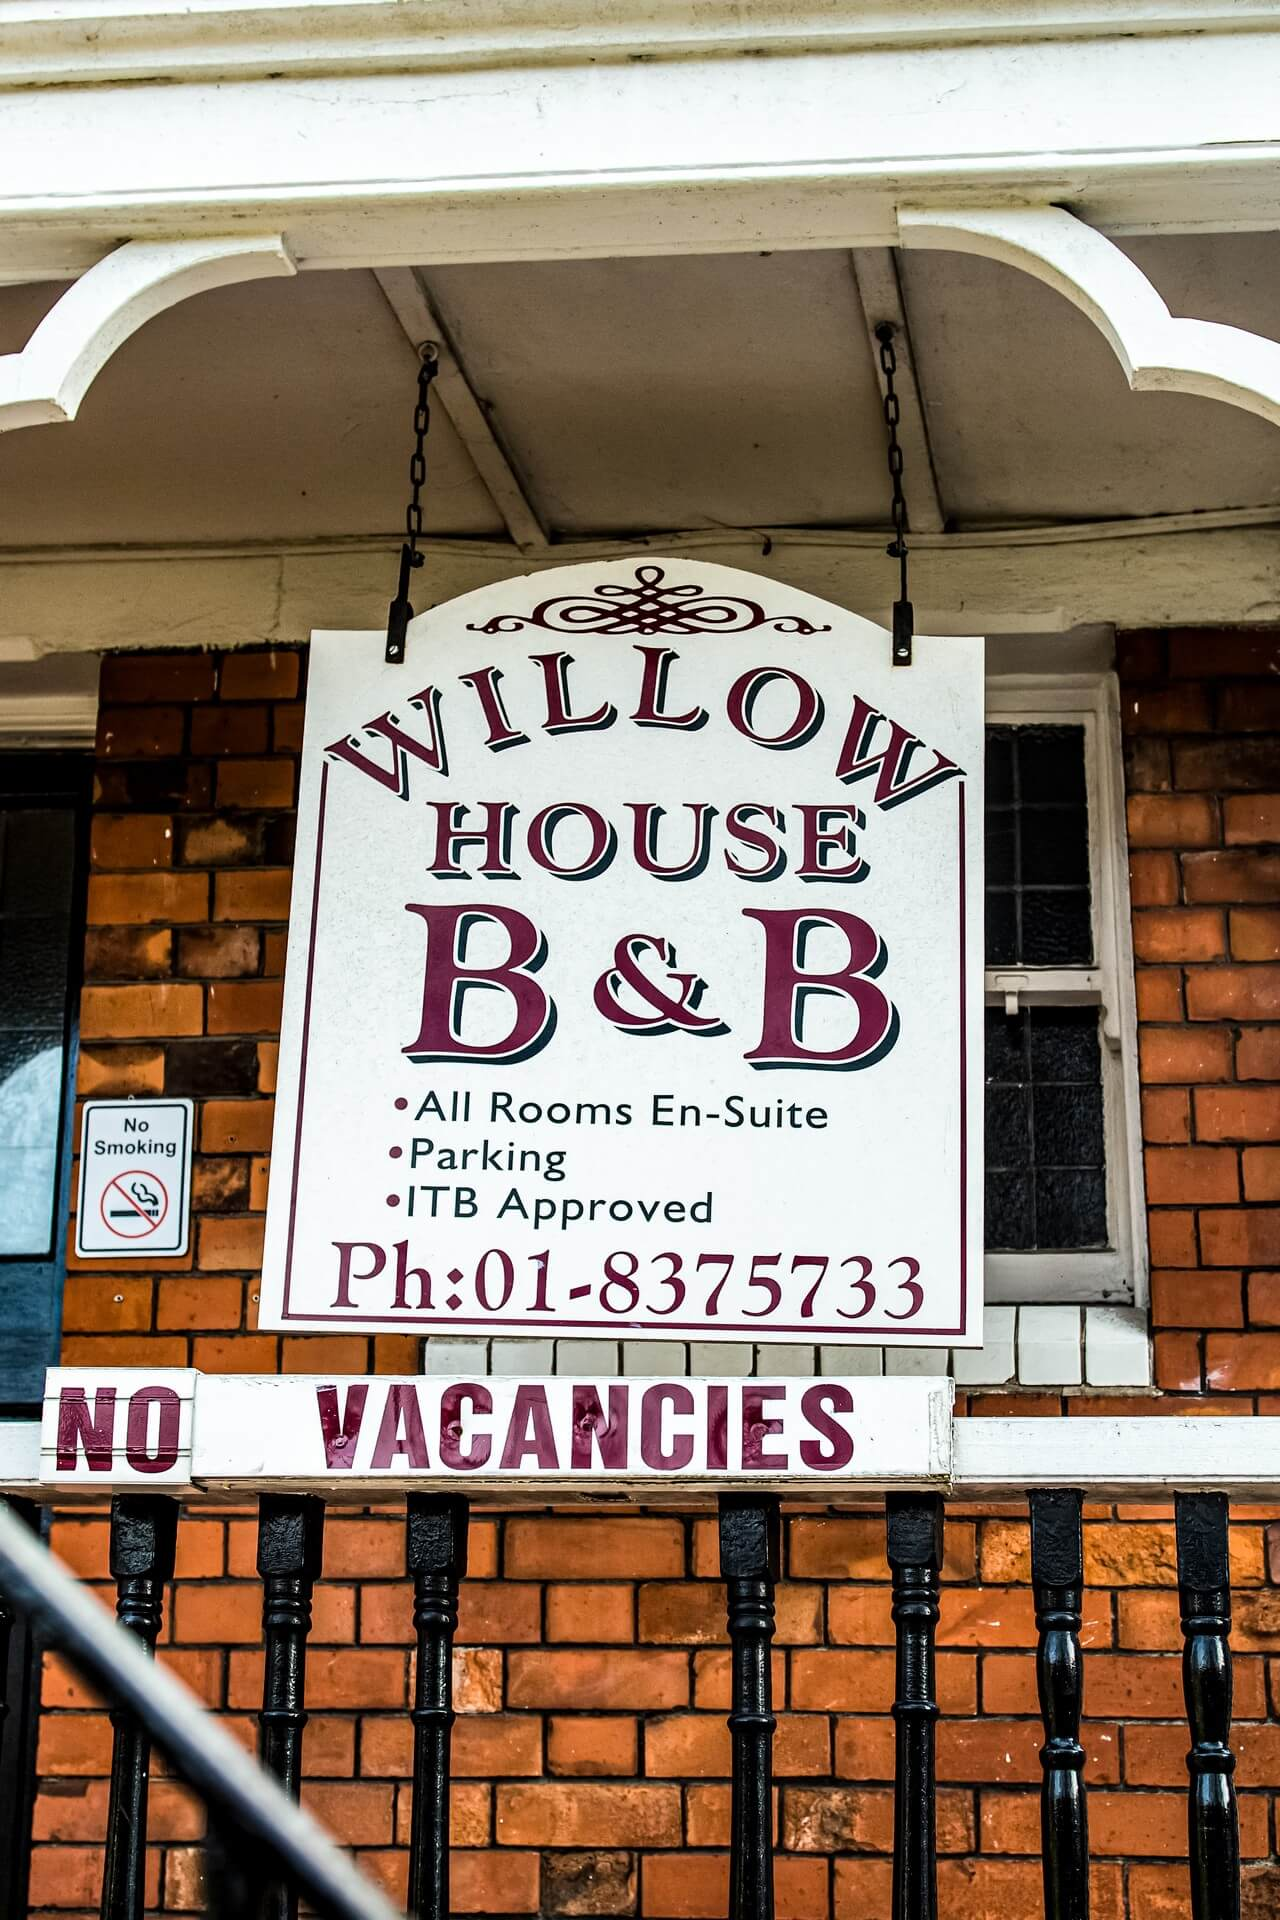 Willow House B&B Fire Rating